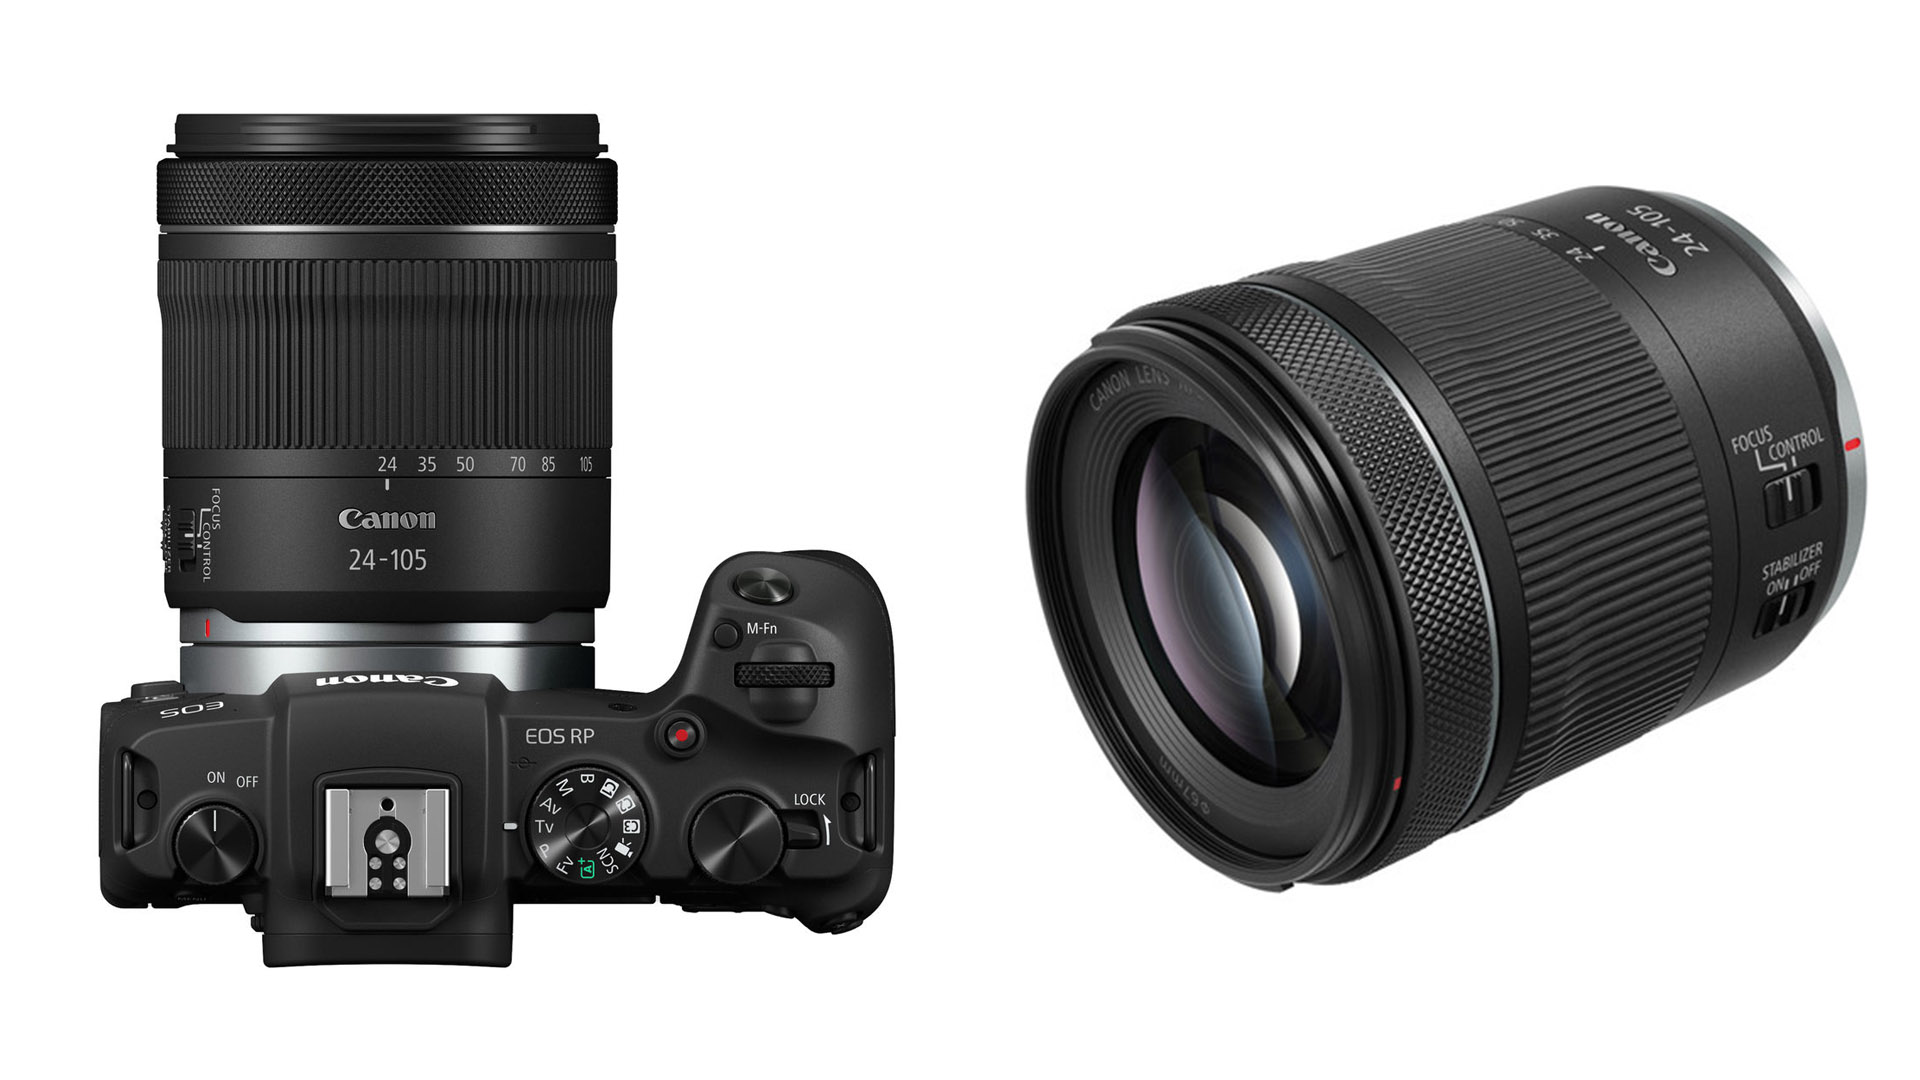 Lente kit de video con montura RF - presentan el Canon 24-105 mm F/4-7.1 IS STM